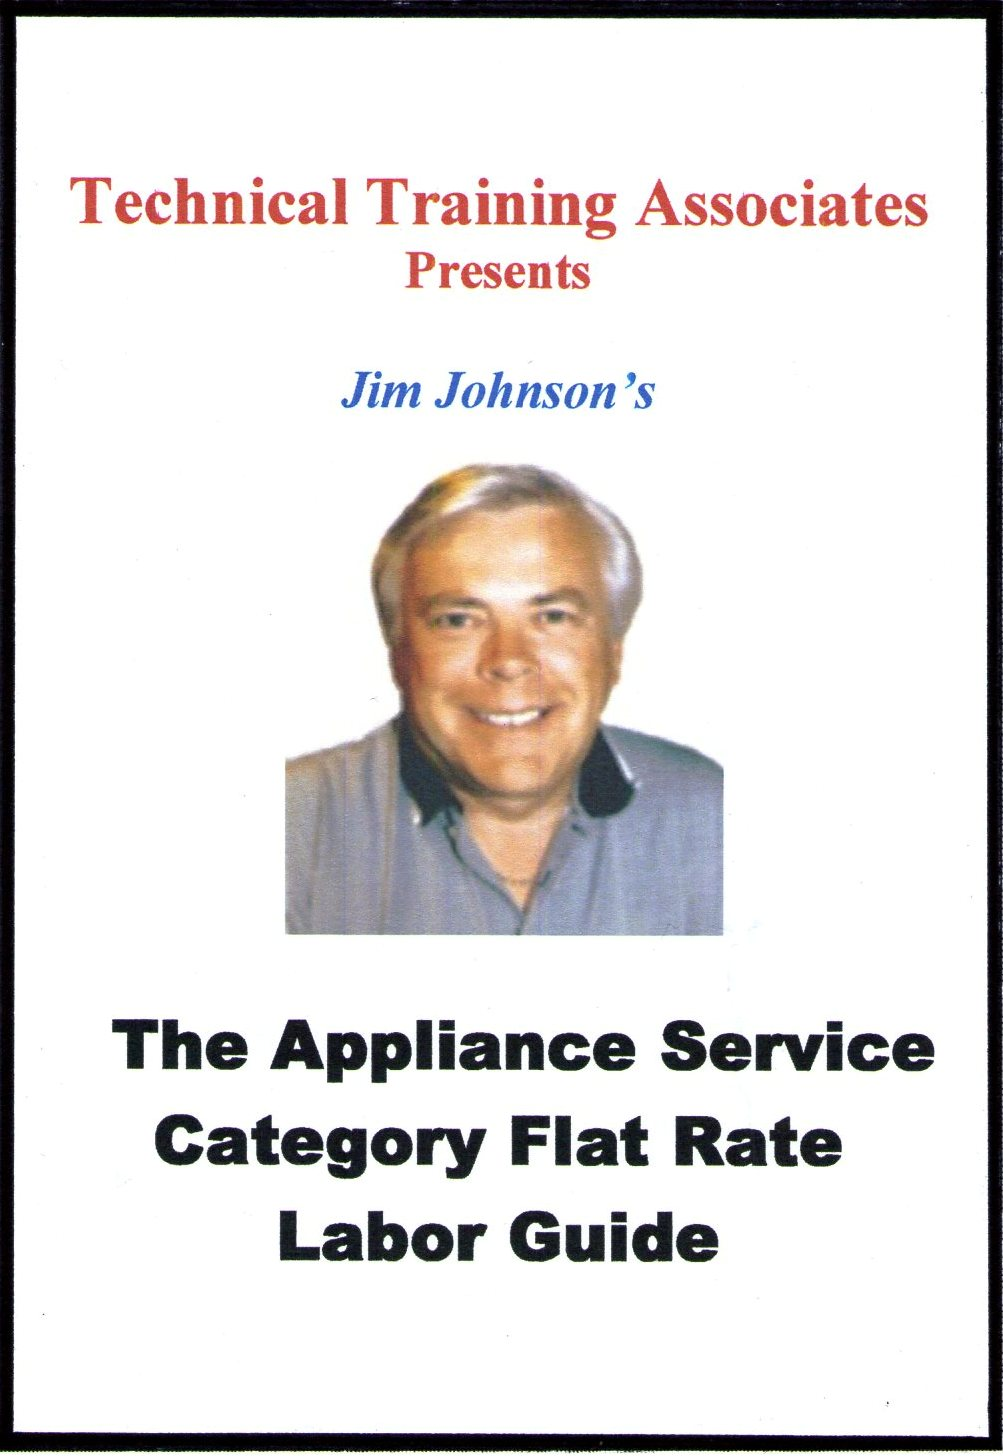 The Appliance Category Flat Rate Labor Guide